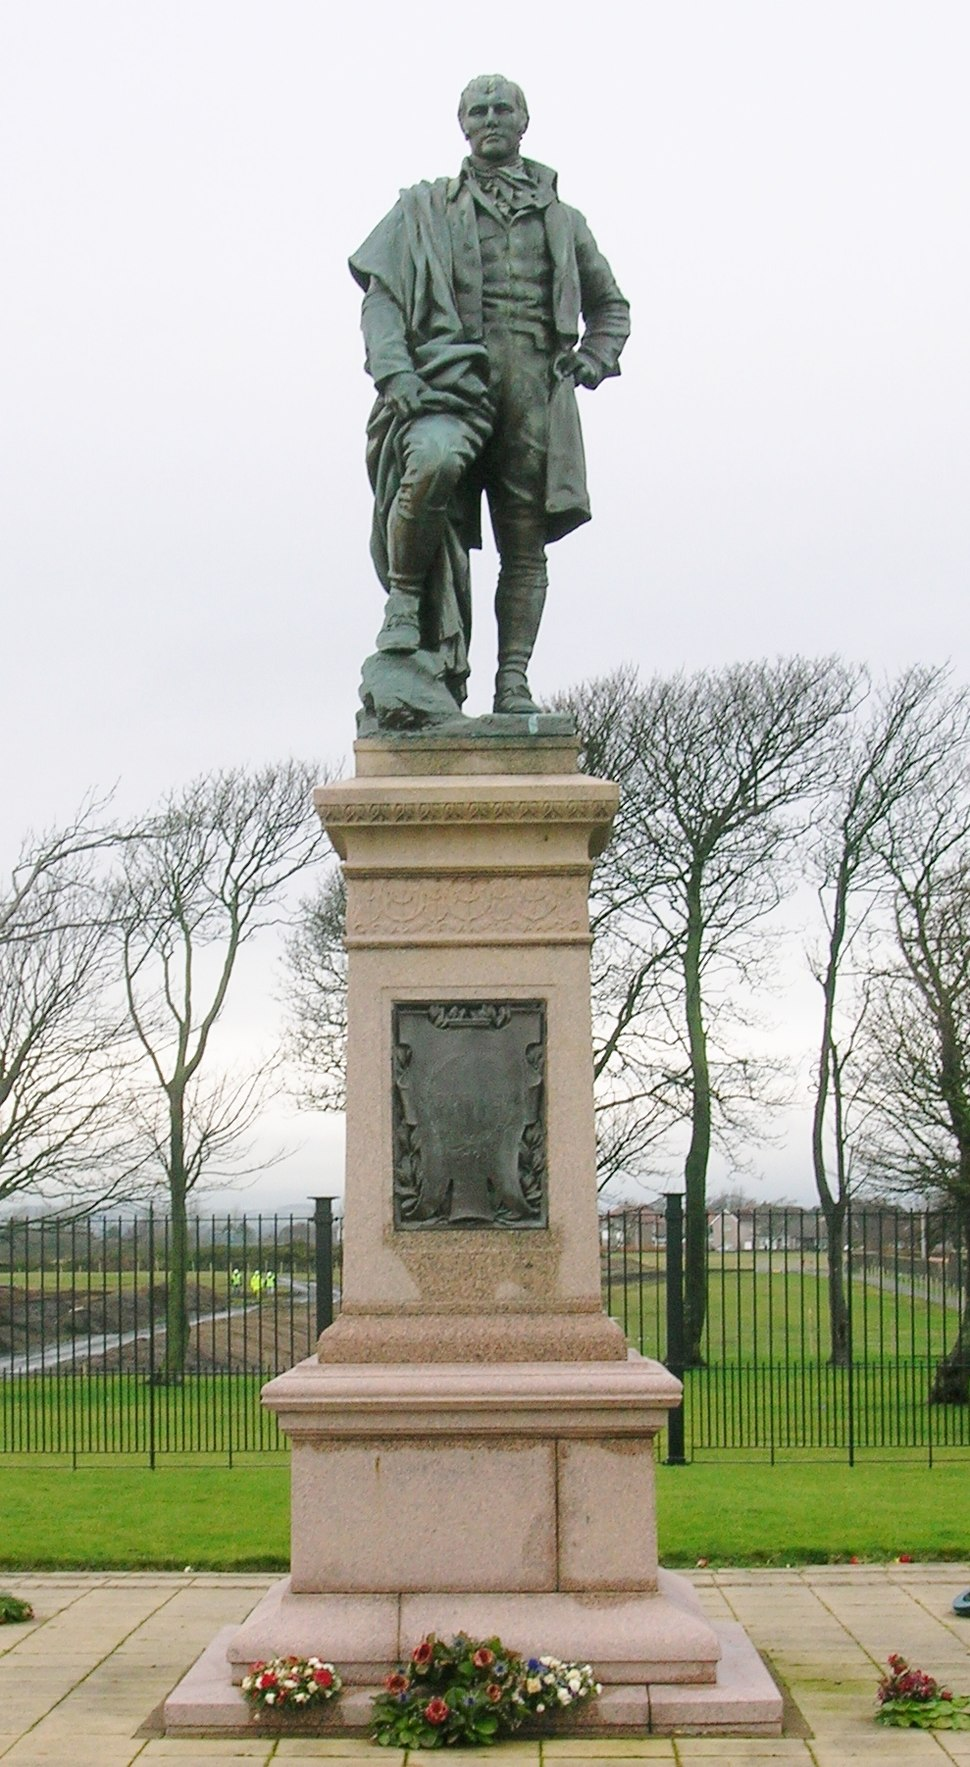 Irvine Burns Monument